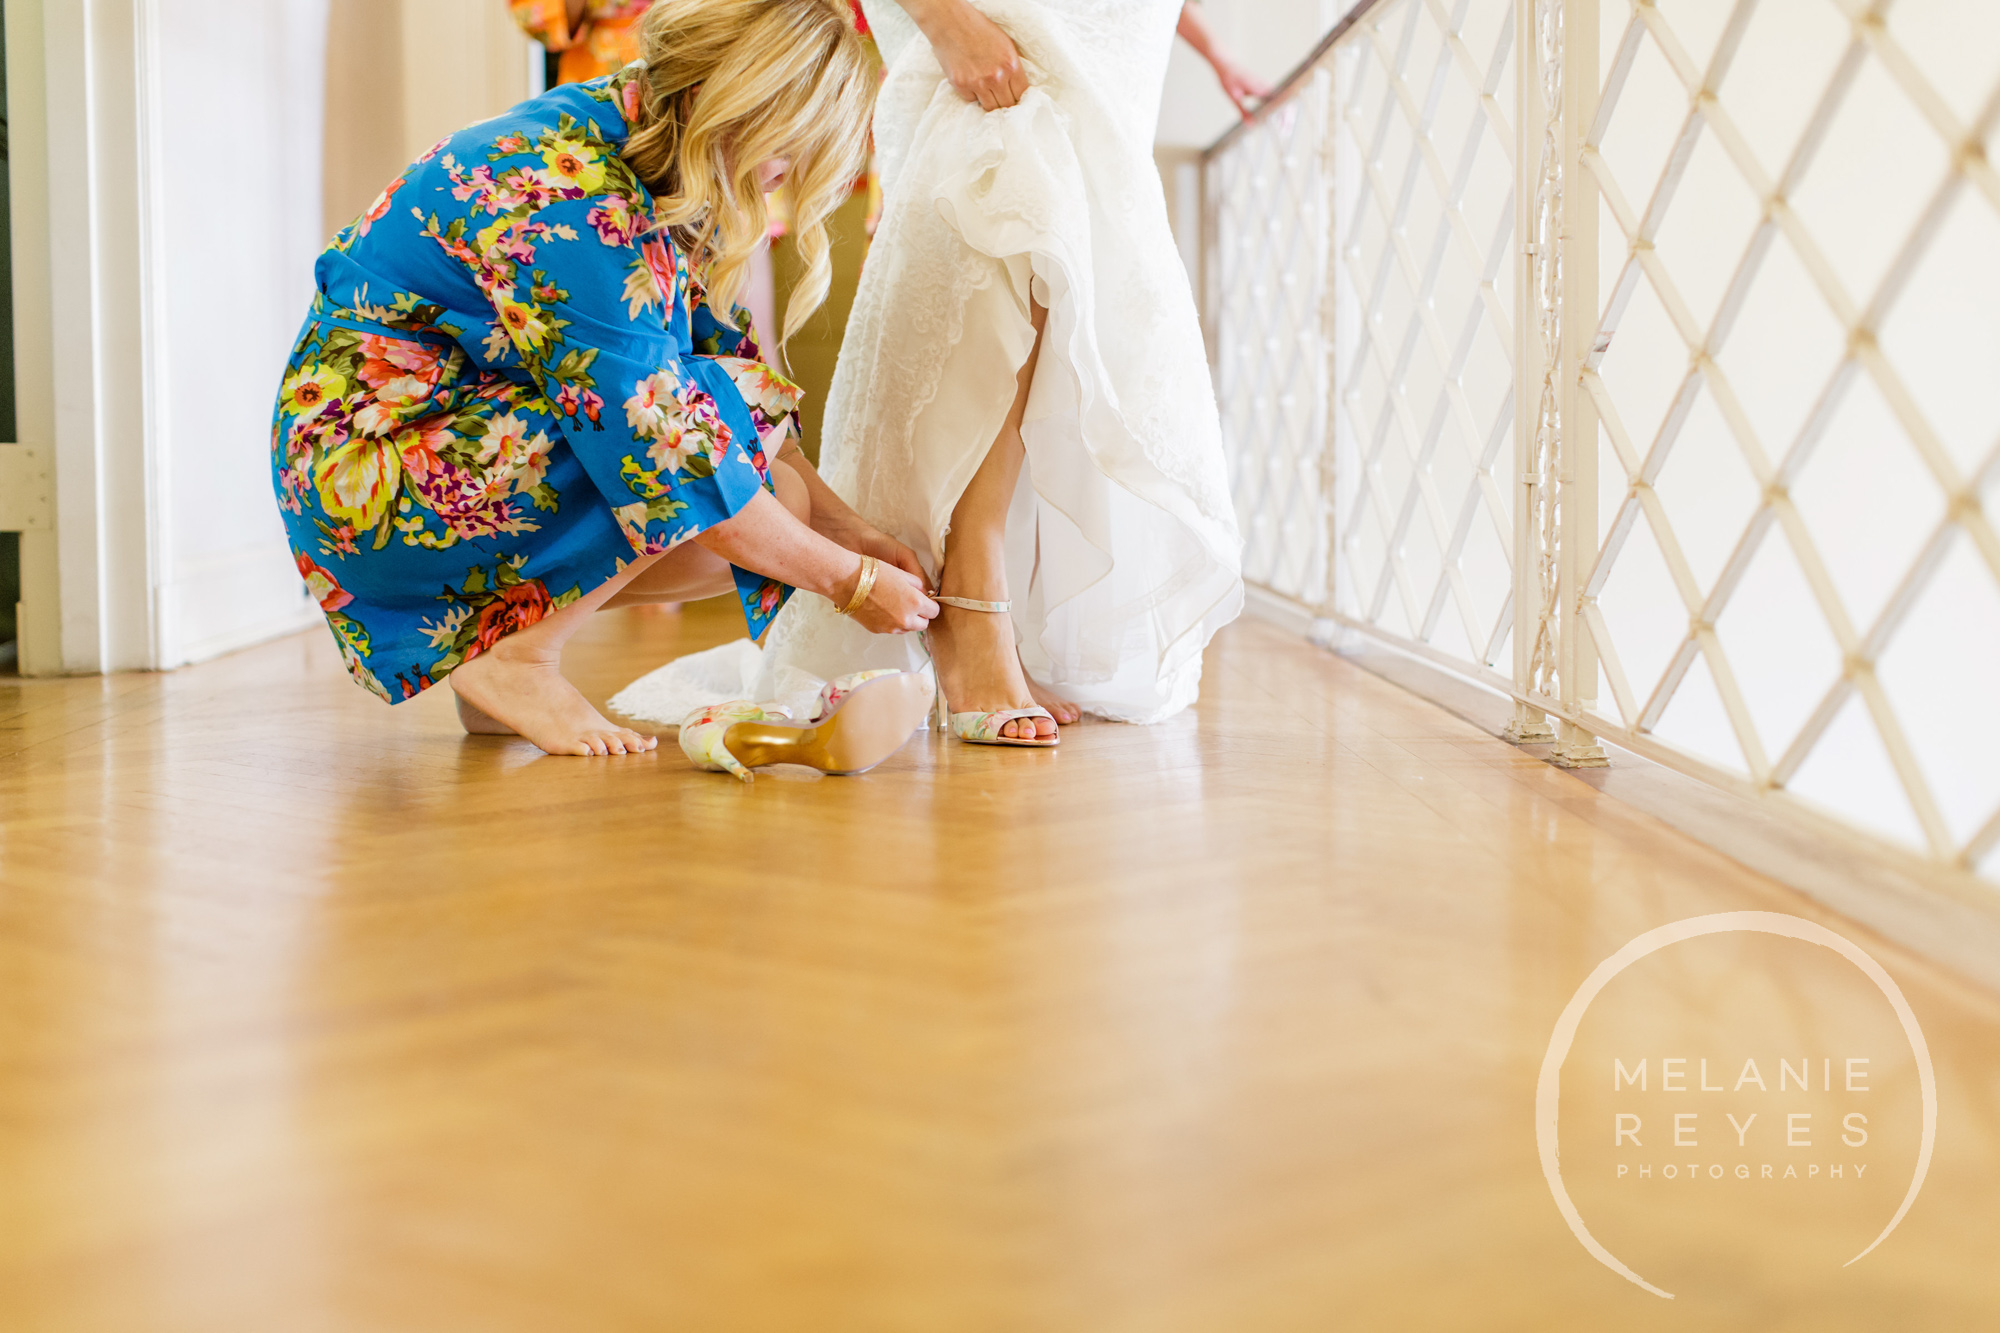 wedding_photographer_captured_moments_melaniereyes_046.jpg